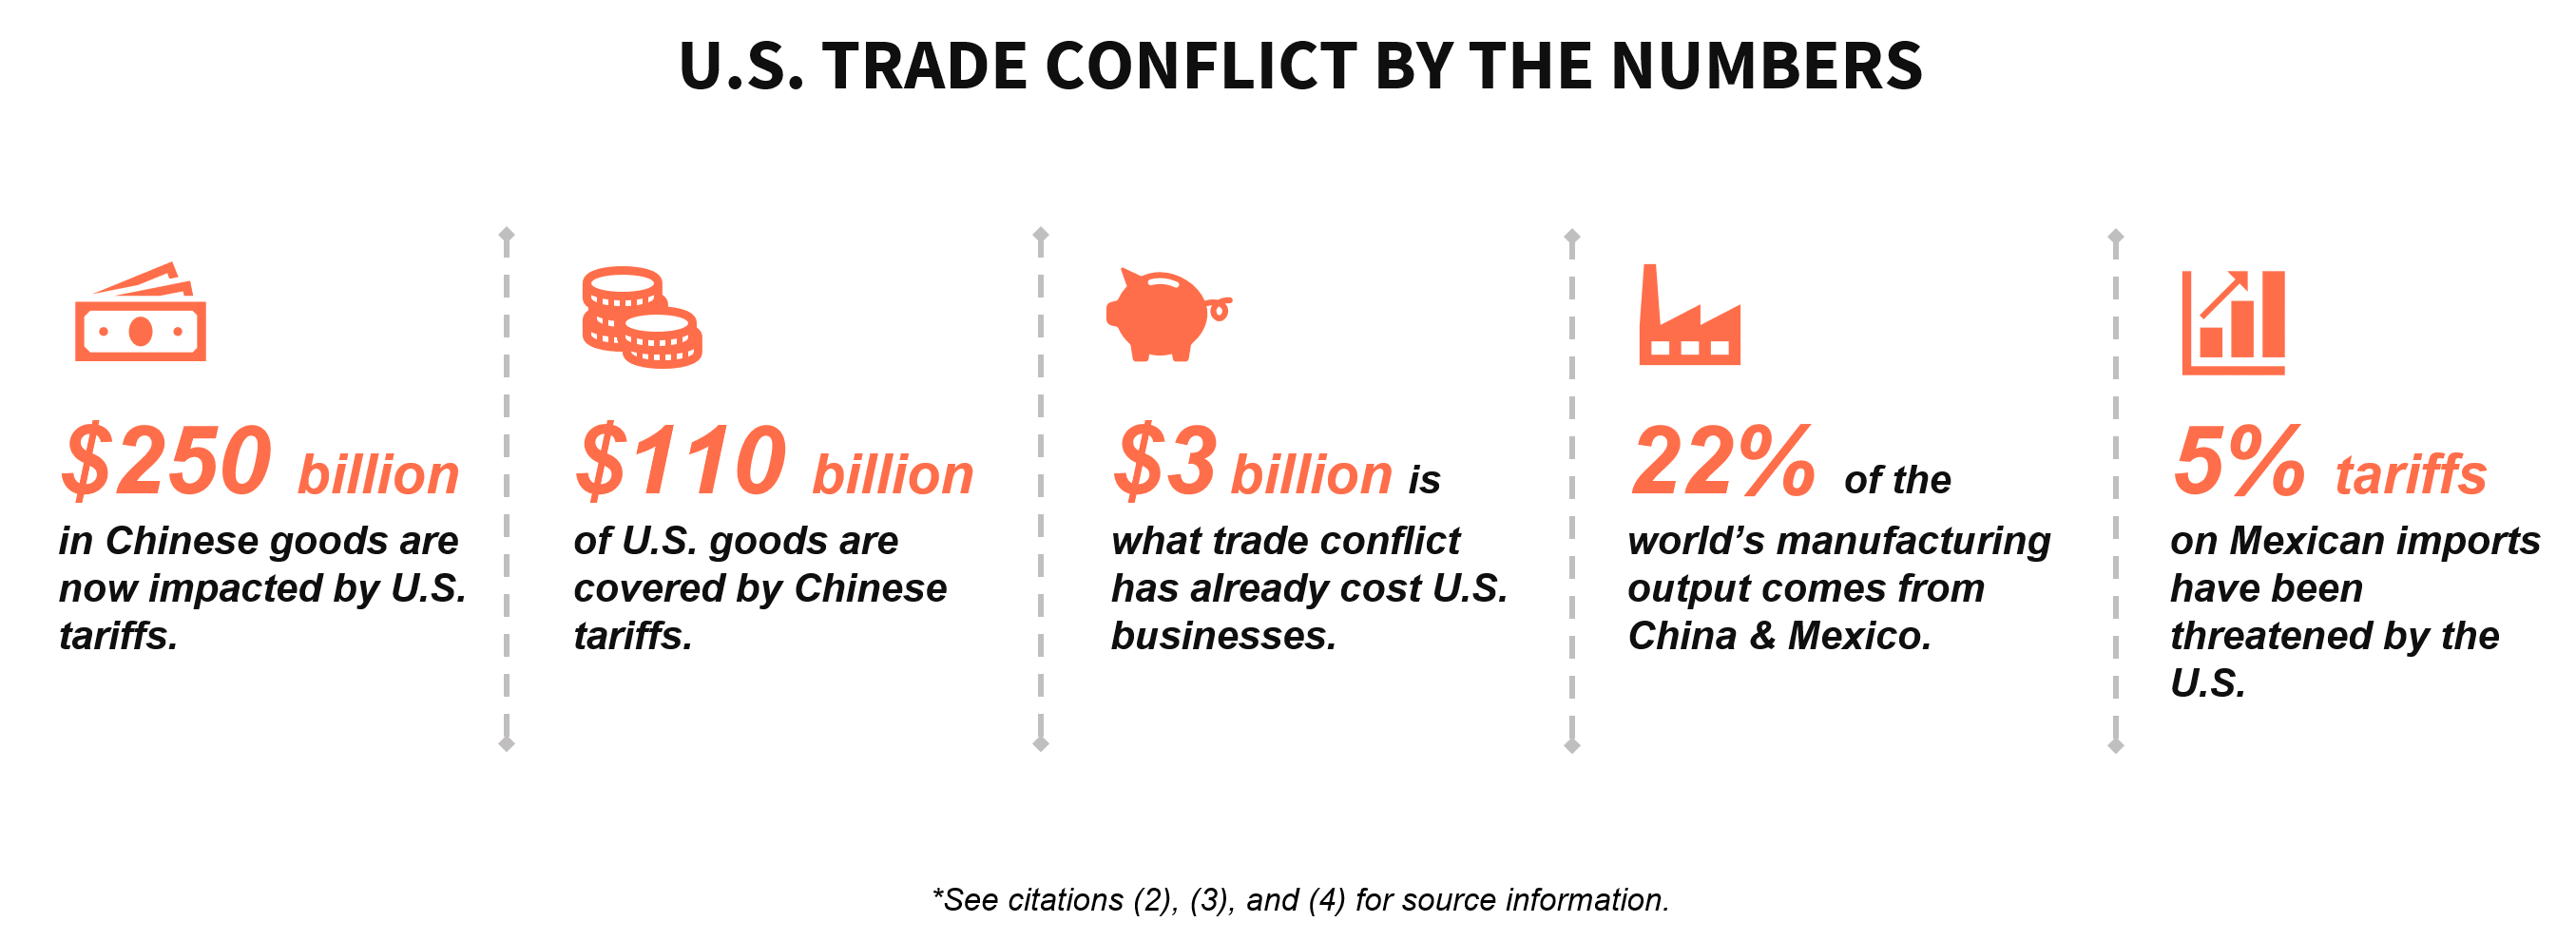 The costs of U.S. trade conflict for U.S. businesses and consumers